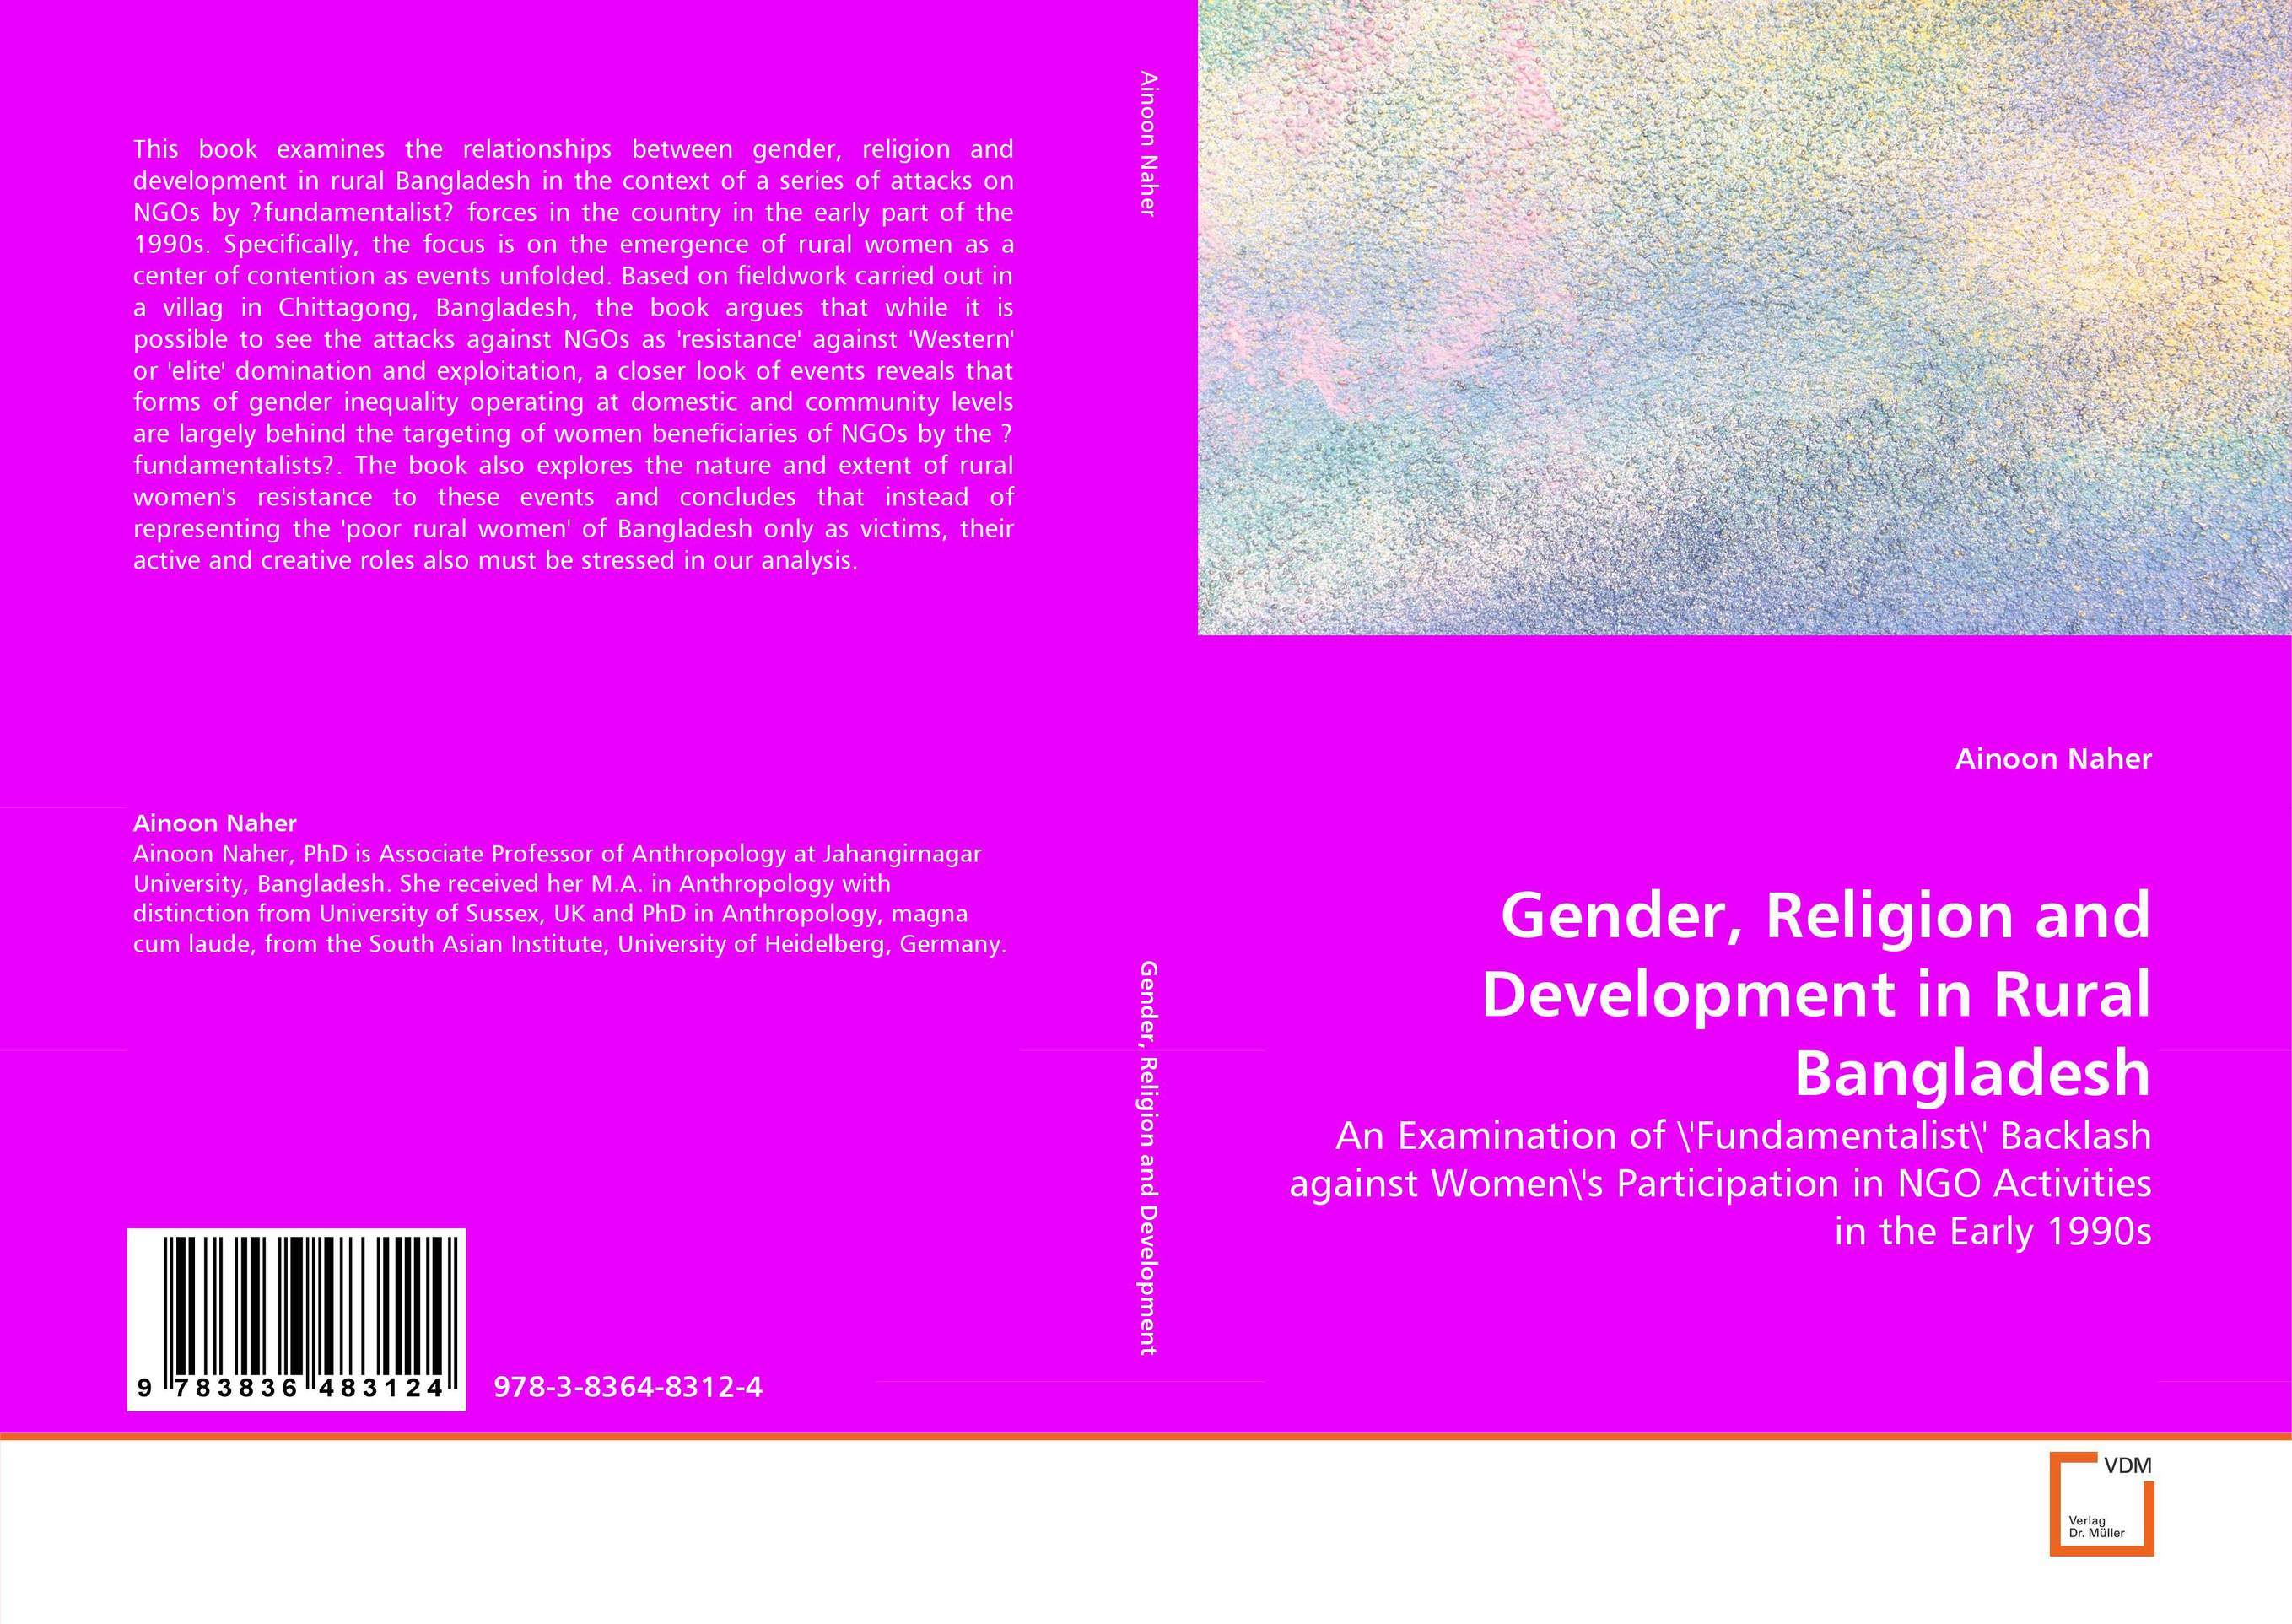 Gender, Religion and Development in Rural Bangladesh